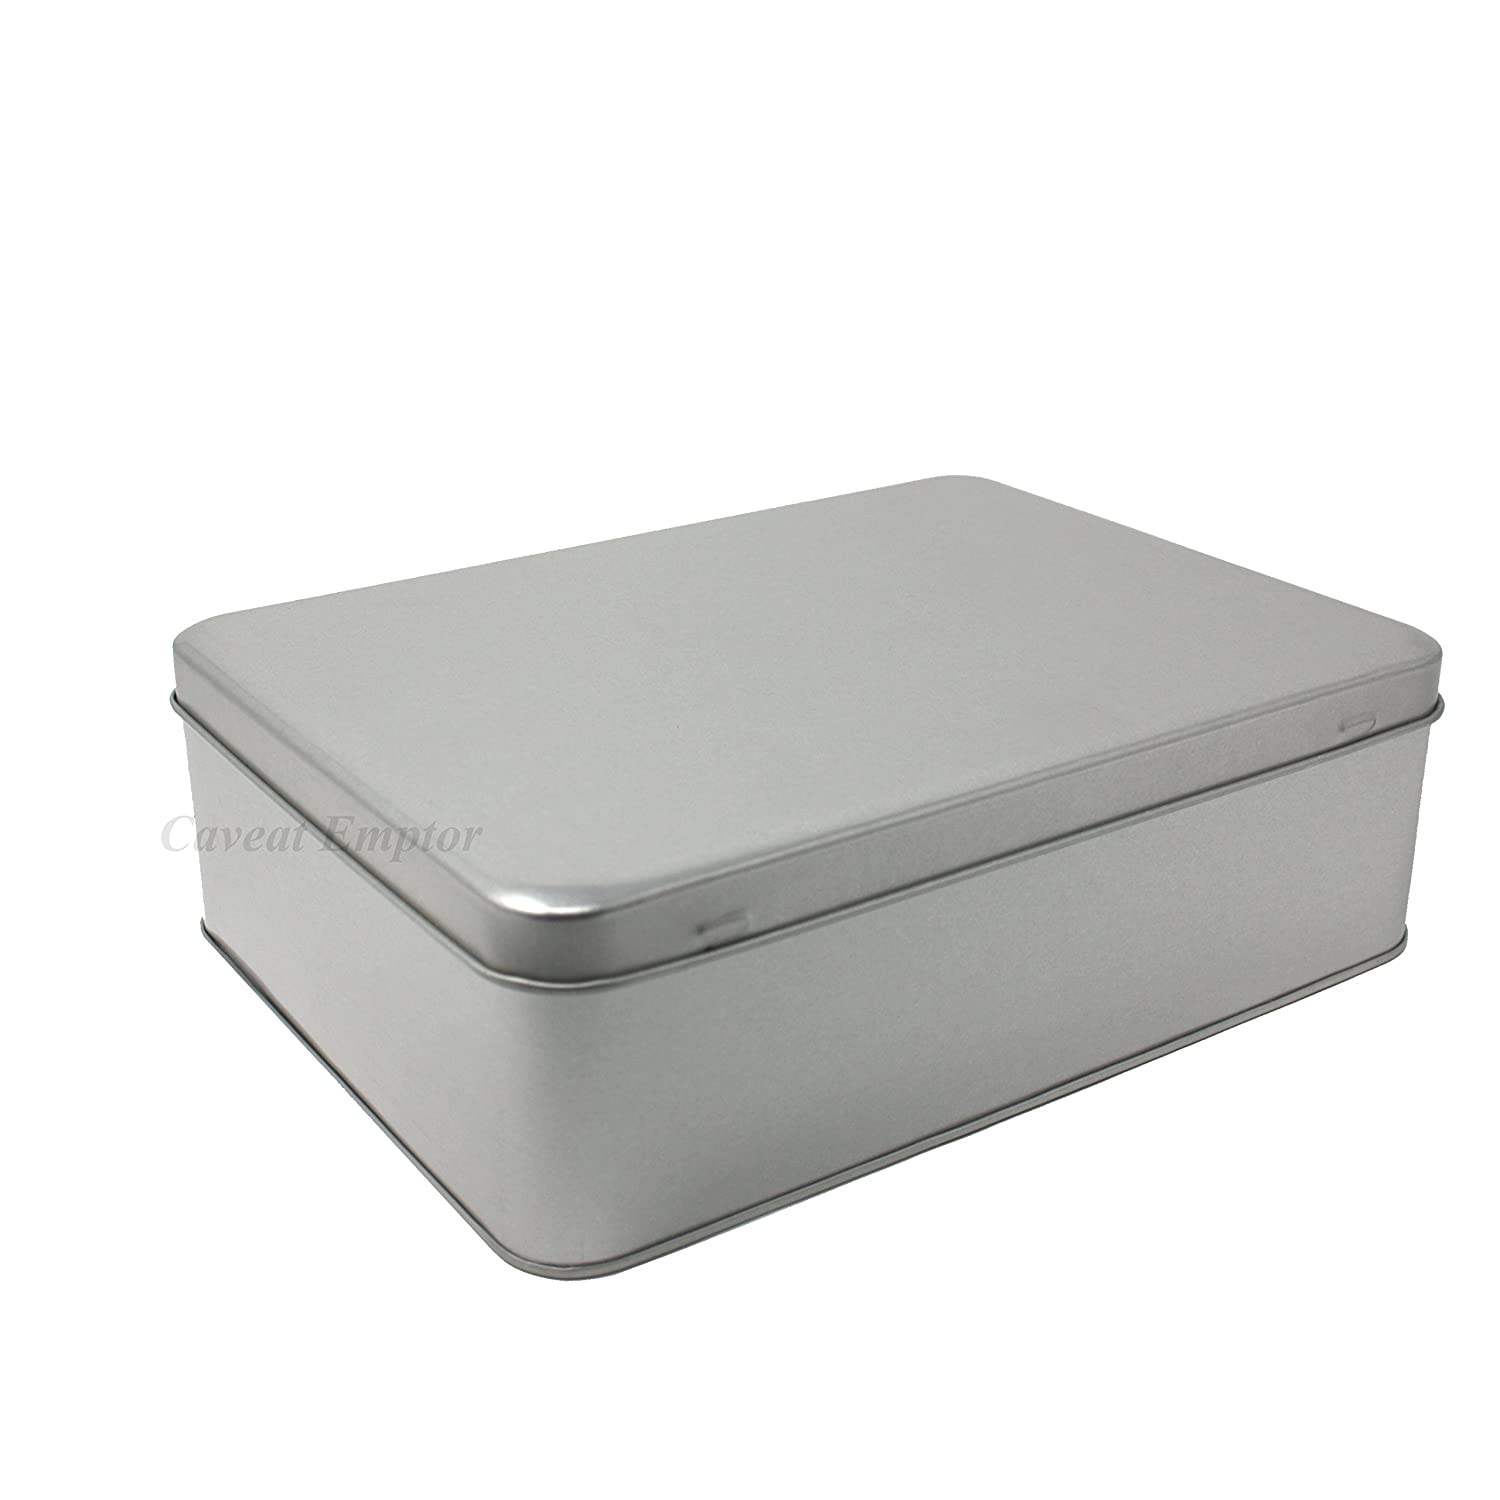 Boxance Large Metal Tin with Hinged Lid Capacity 2.2 Litre Biscuit Tin Storage Box Large Retro Metal Tin Tins Cookie Biscuit Pastry Cookies Pastry Bread Bin Cutter Metal Tin Silver